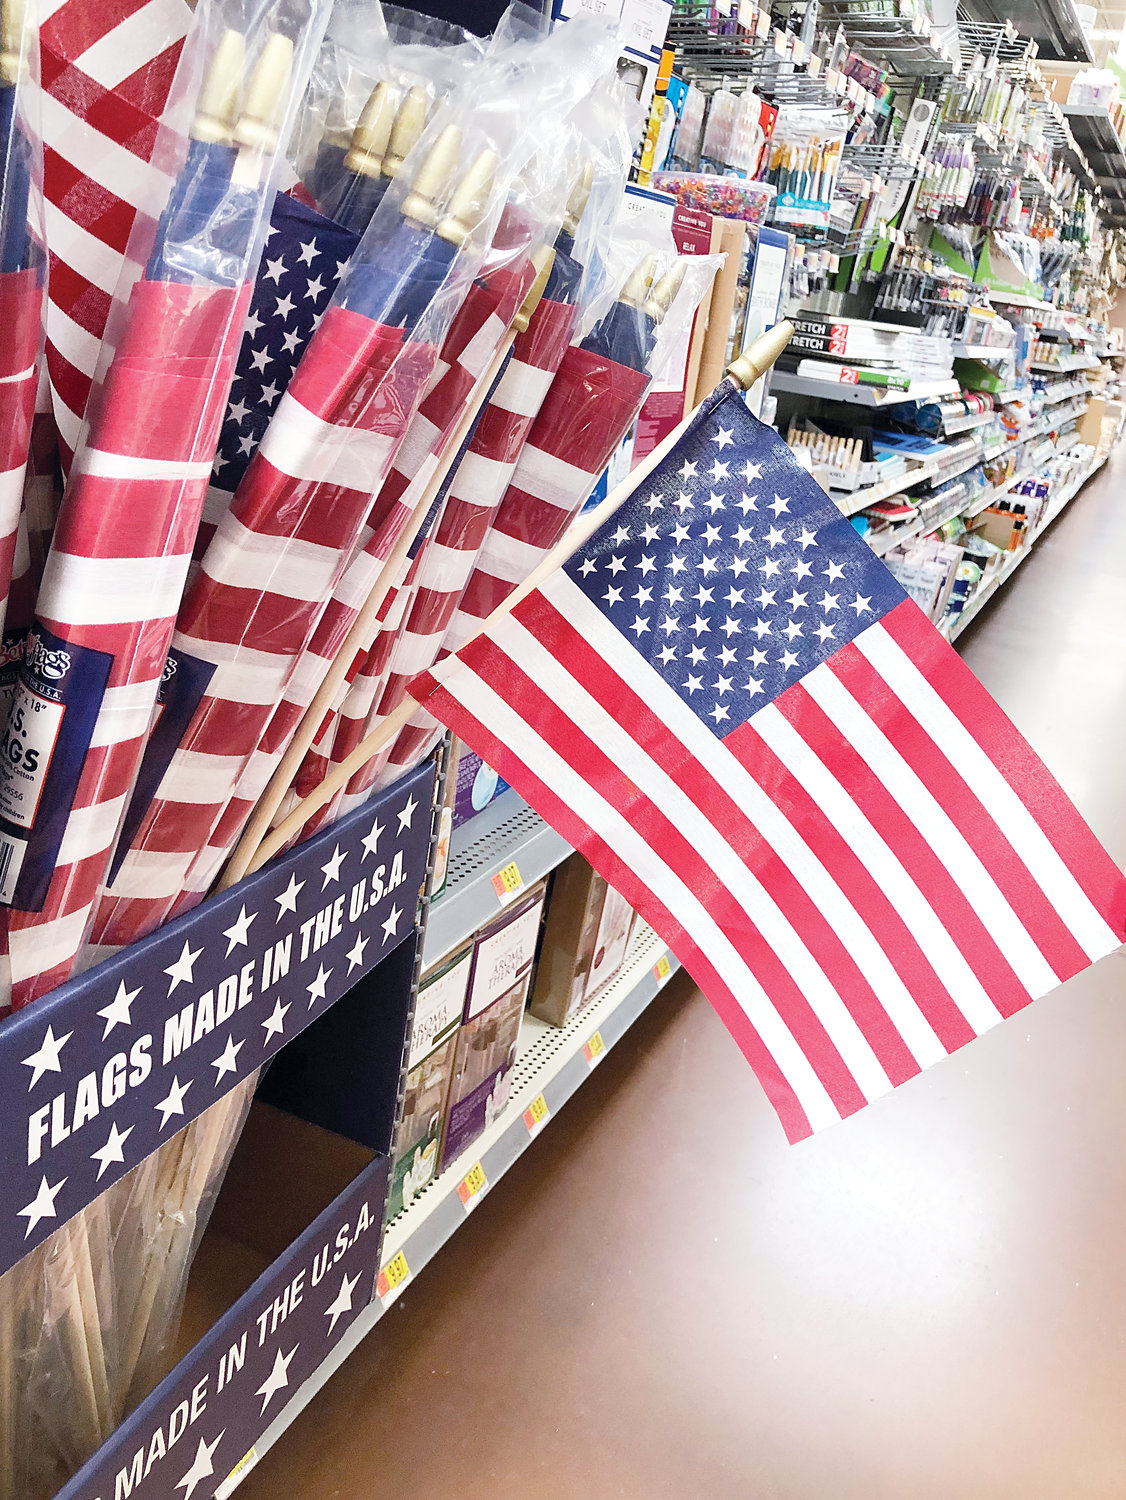 More than million U.S. flags are sold annually in the United States, according to the Flag Manufacturers Association of America.